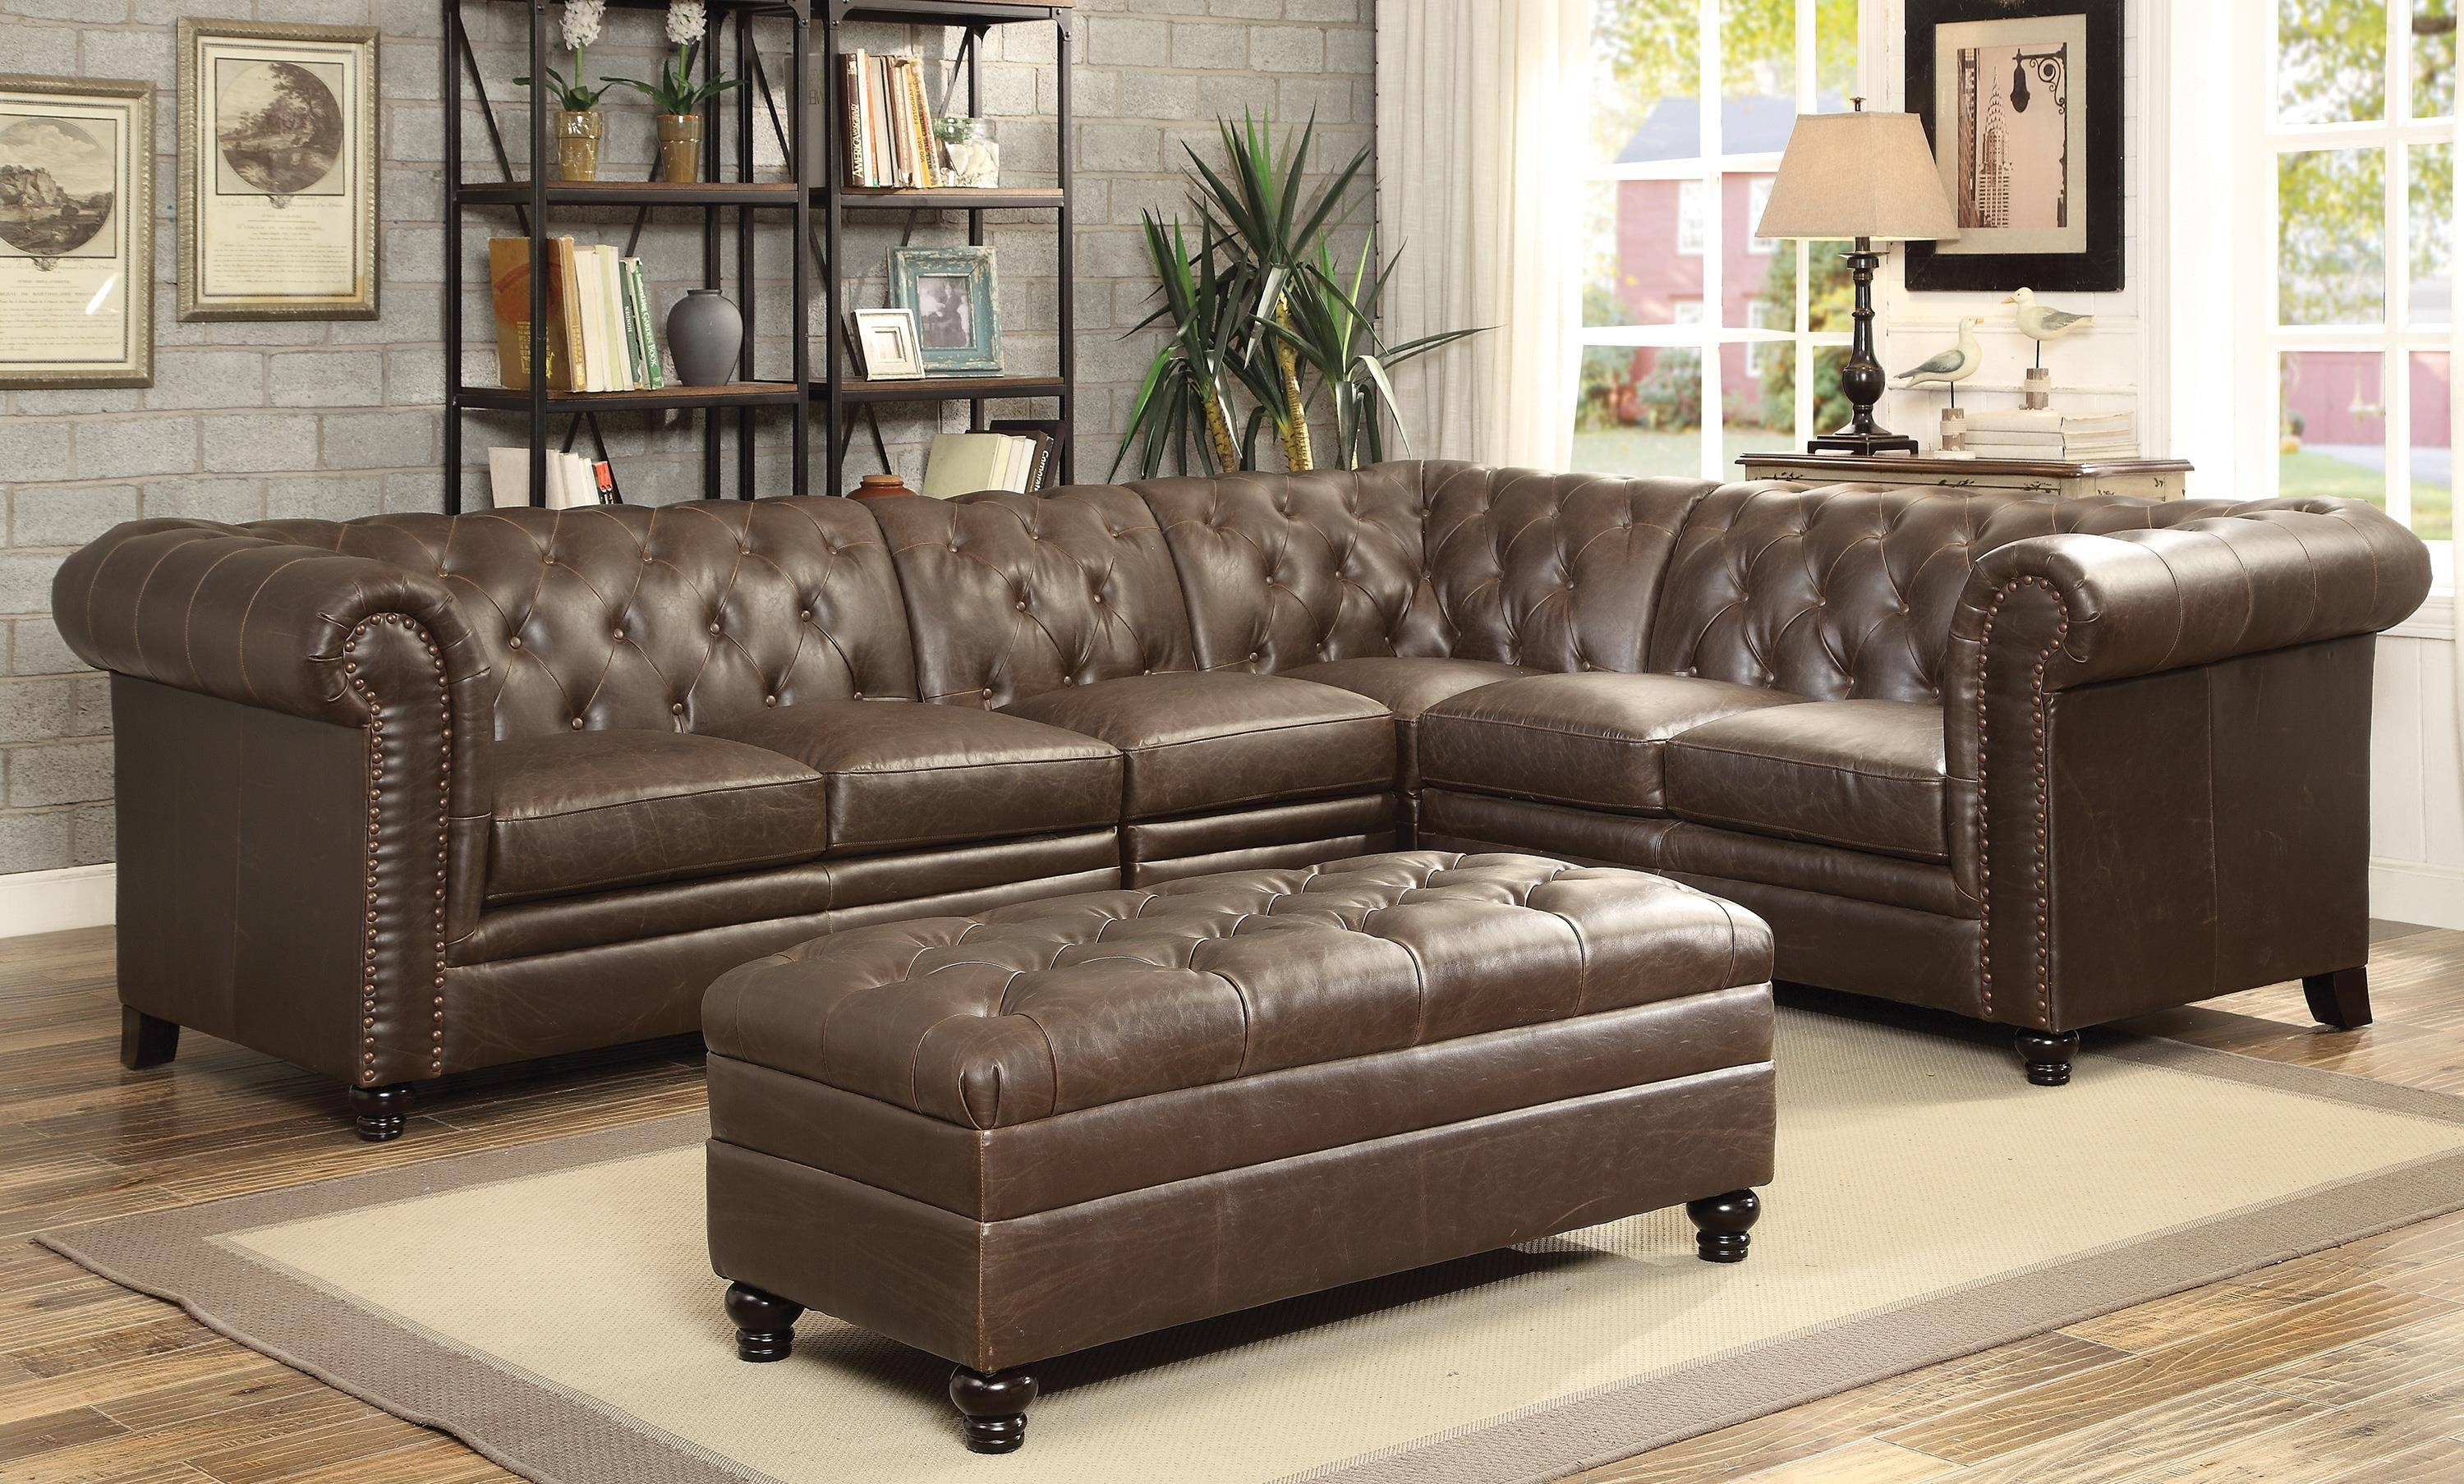 Coaster Roy Button-Tufted Sectional Sofa - Coaster Fine Furniture with regard to Coaster Sectional Sofas (Image 11 of 15)